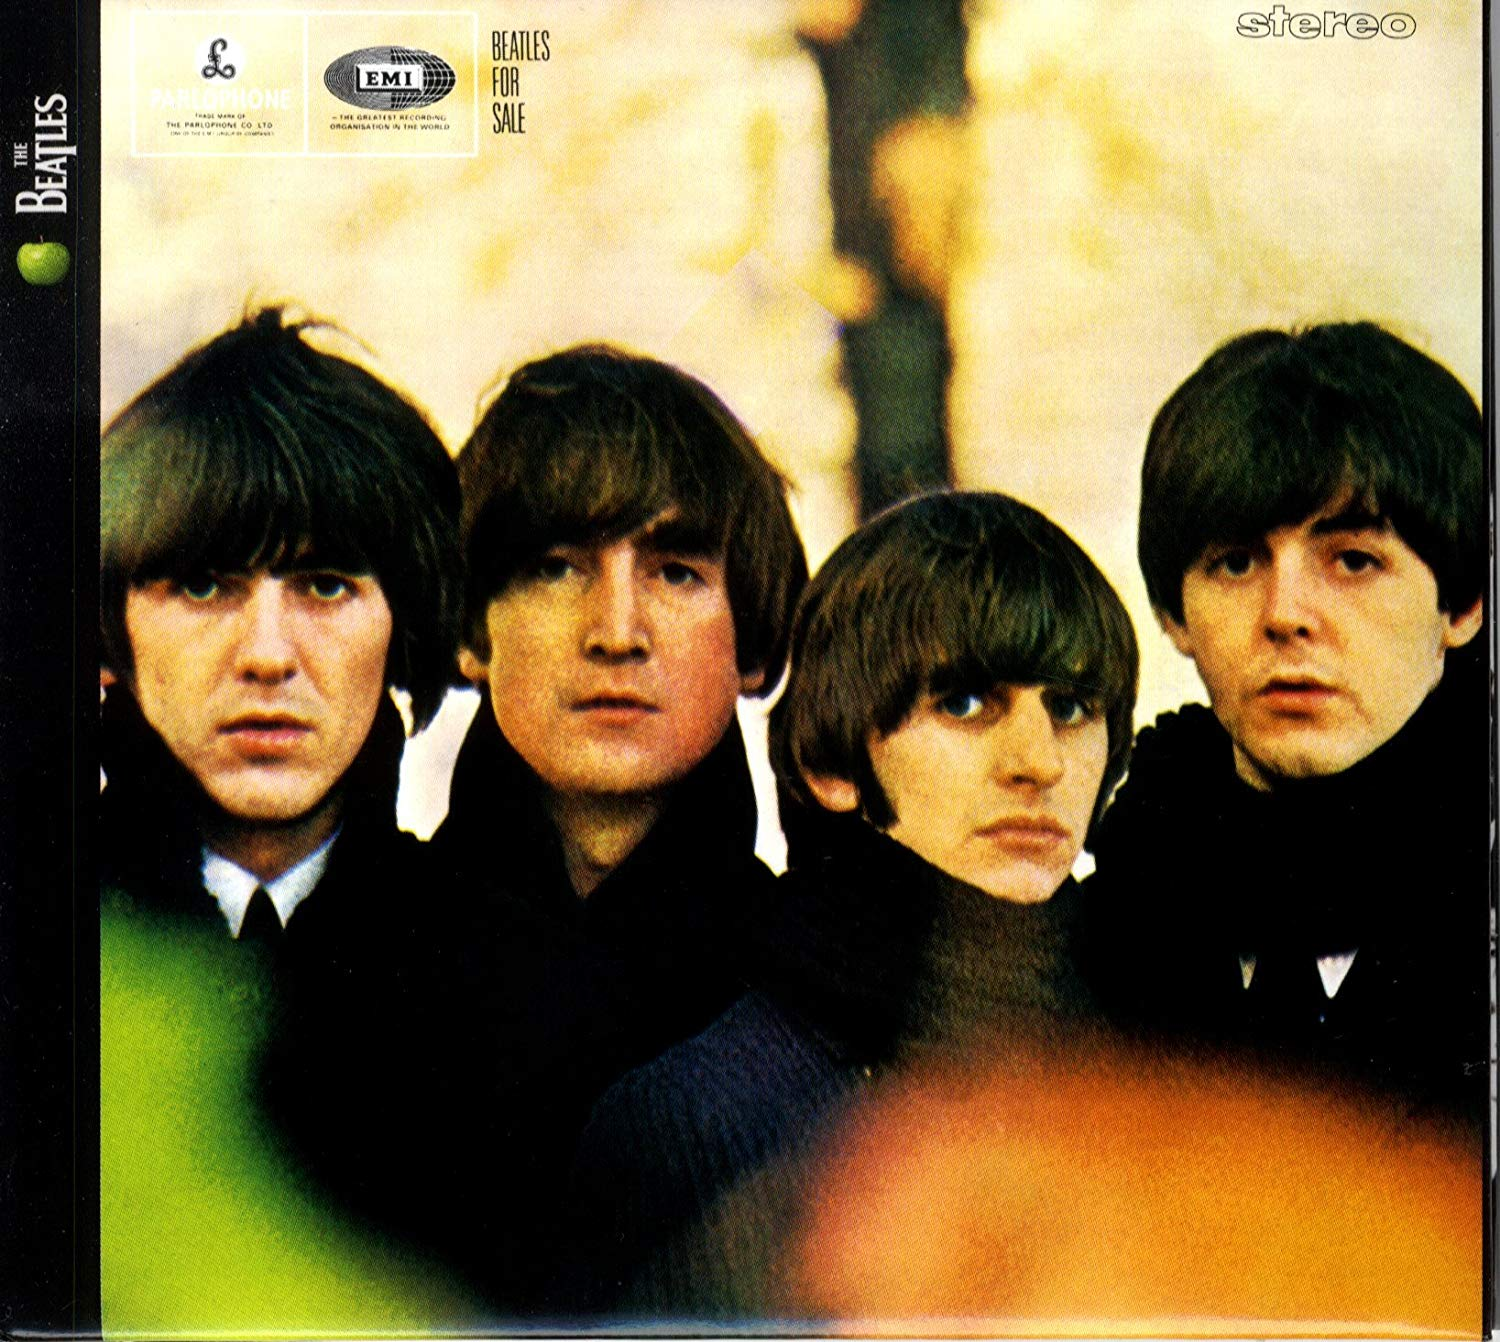 BEATLES FOR SALE (RARITY)